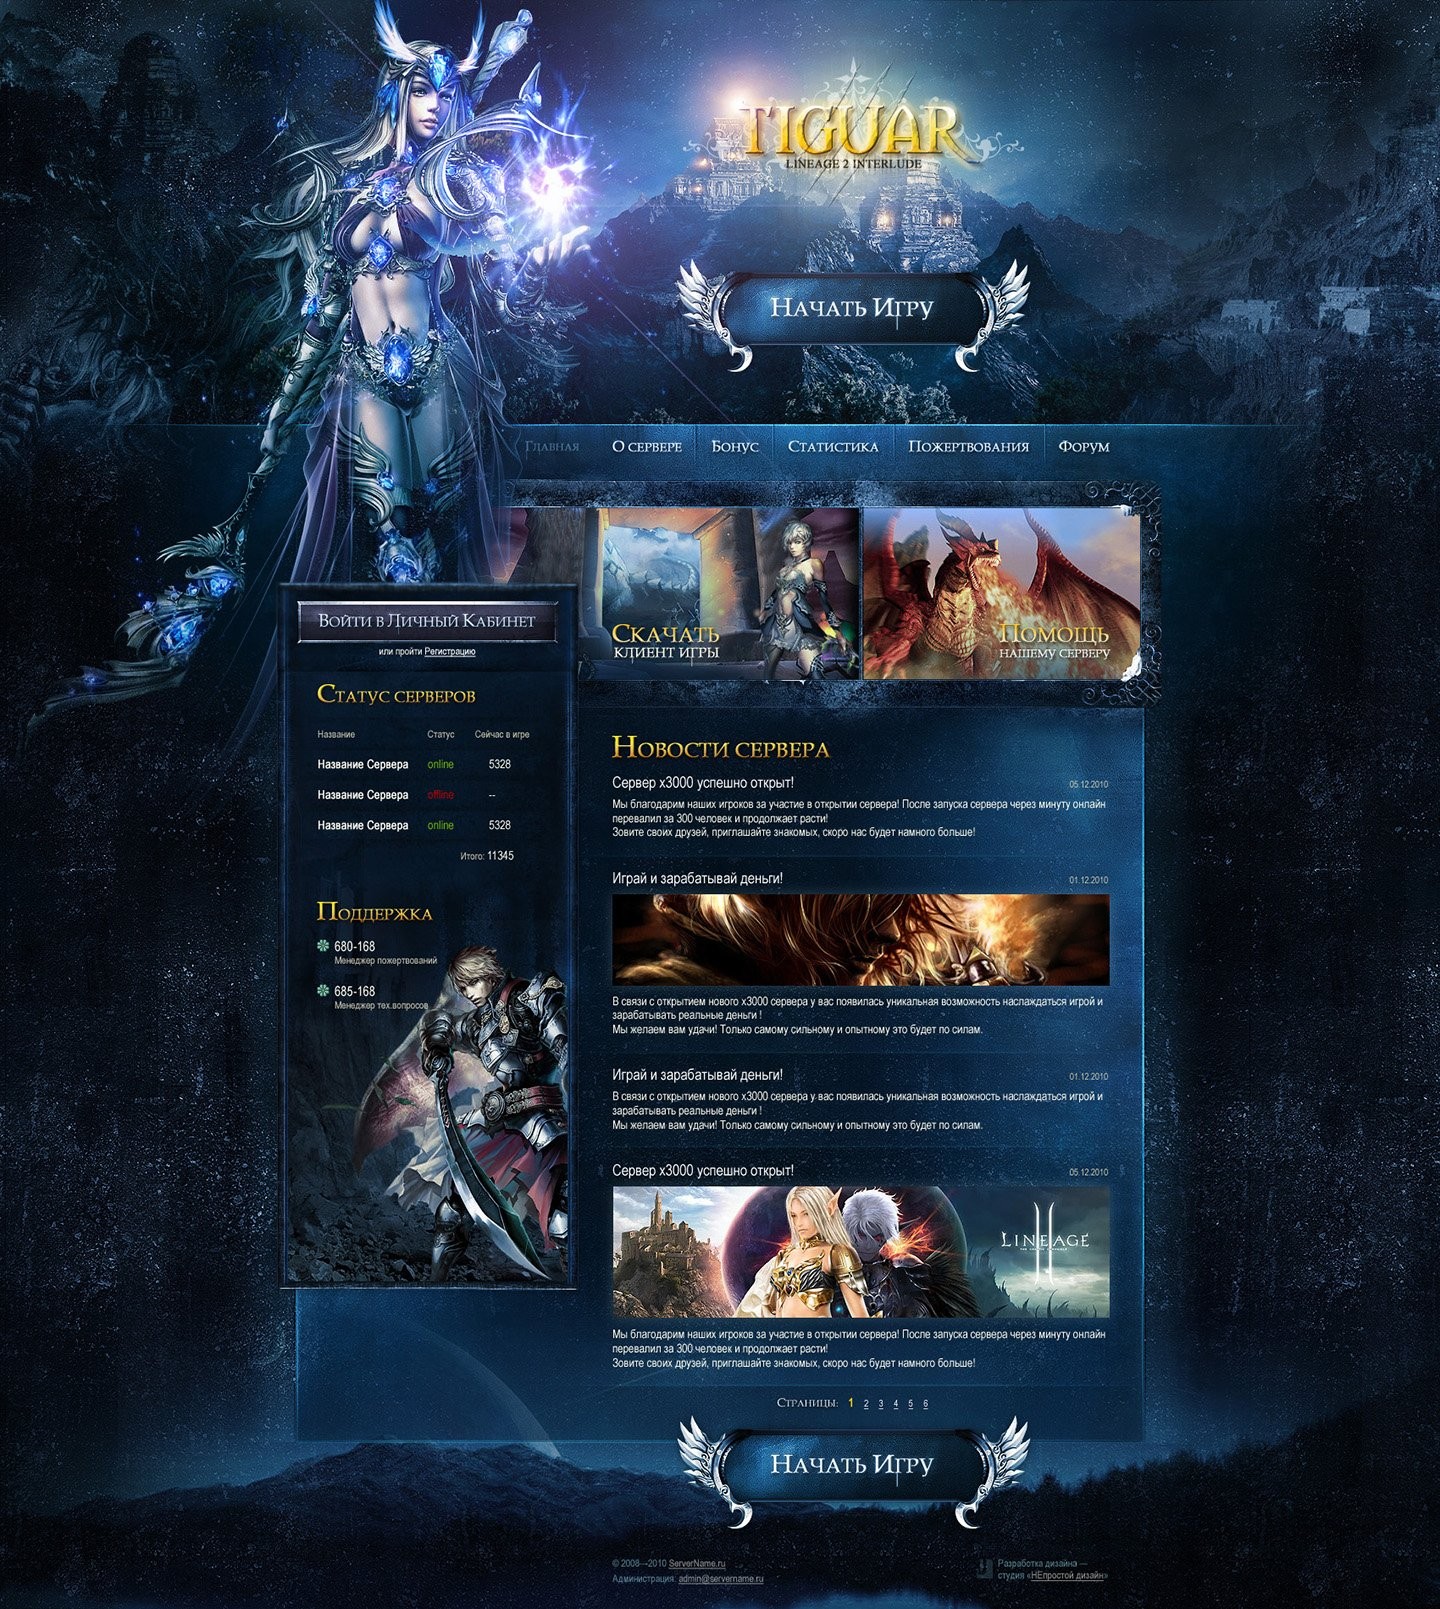 Tiguar > Website design for Lineage 2 private server. Main page